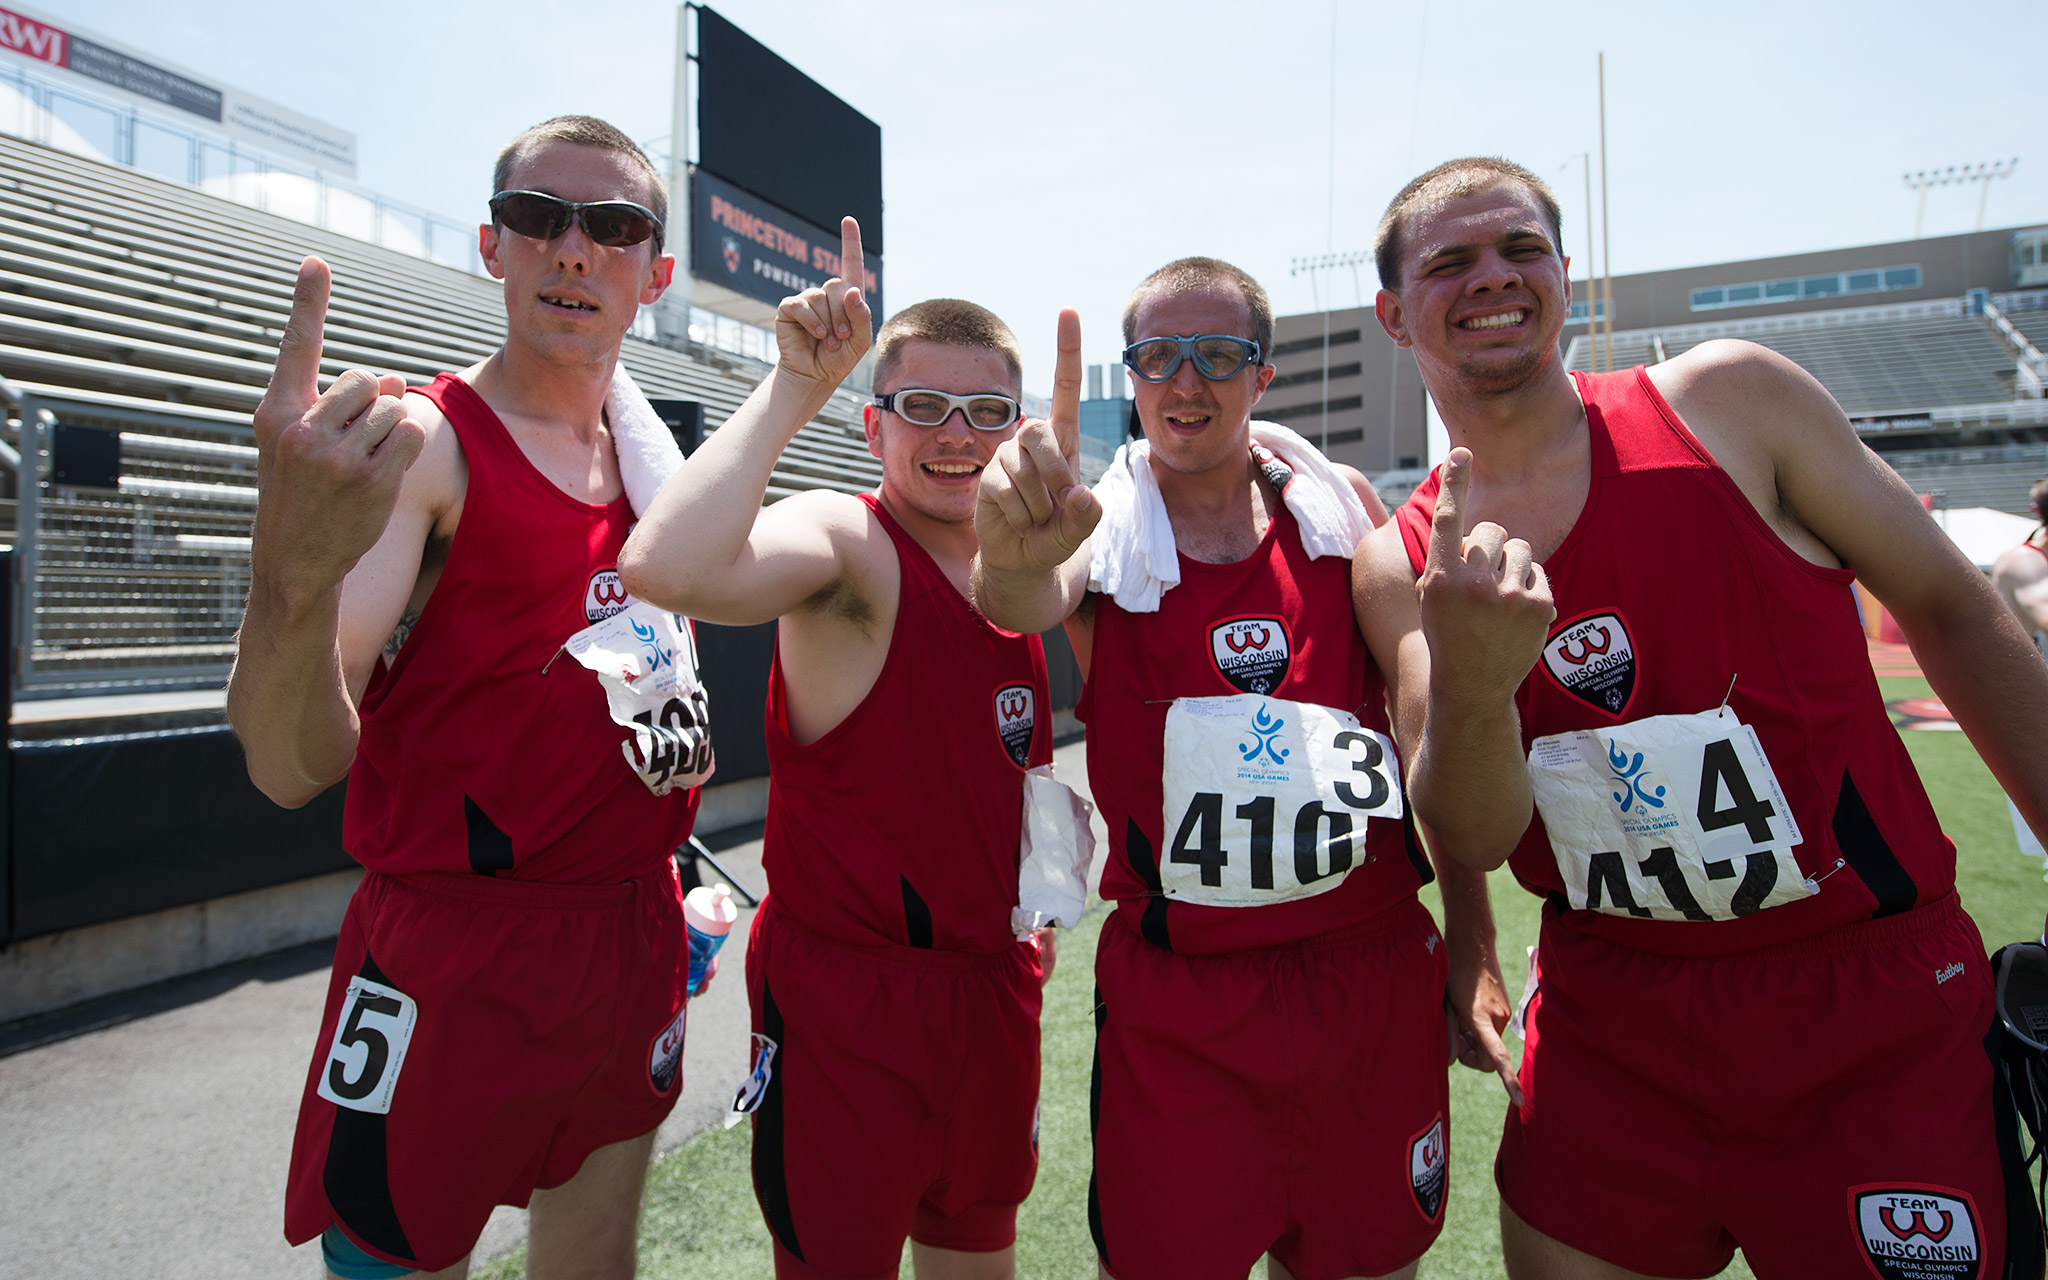 Wisconsin's Jerry Halboth, Zechariah Tietz, Thomas Mislivecek and Dustin Scott celebrate a first-place finish in the men's 4x400-meter relay at the 2014 Special Olympics USA Games.